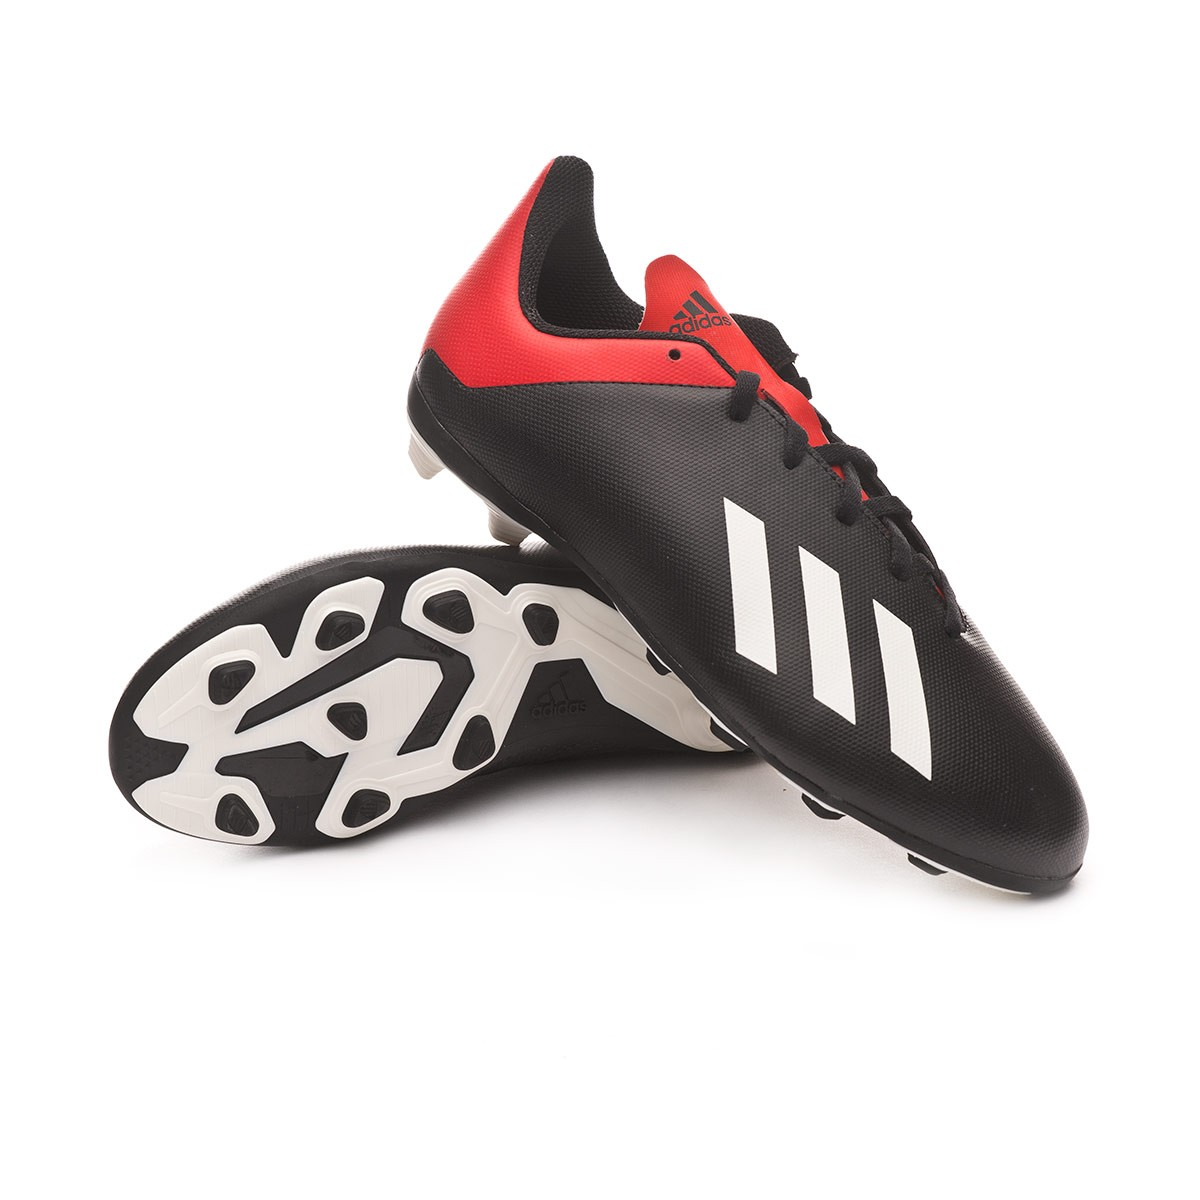 Boot adidas Kids X 18.4 FxG Core black-Off white-Active red - Leaked ... d77c1ea45c04d